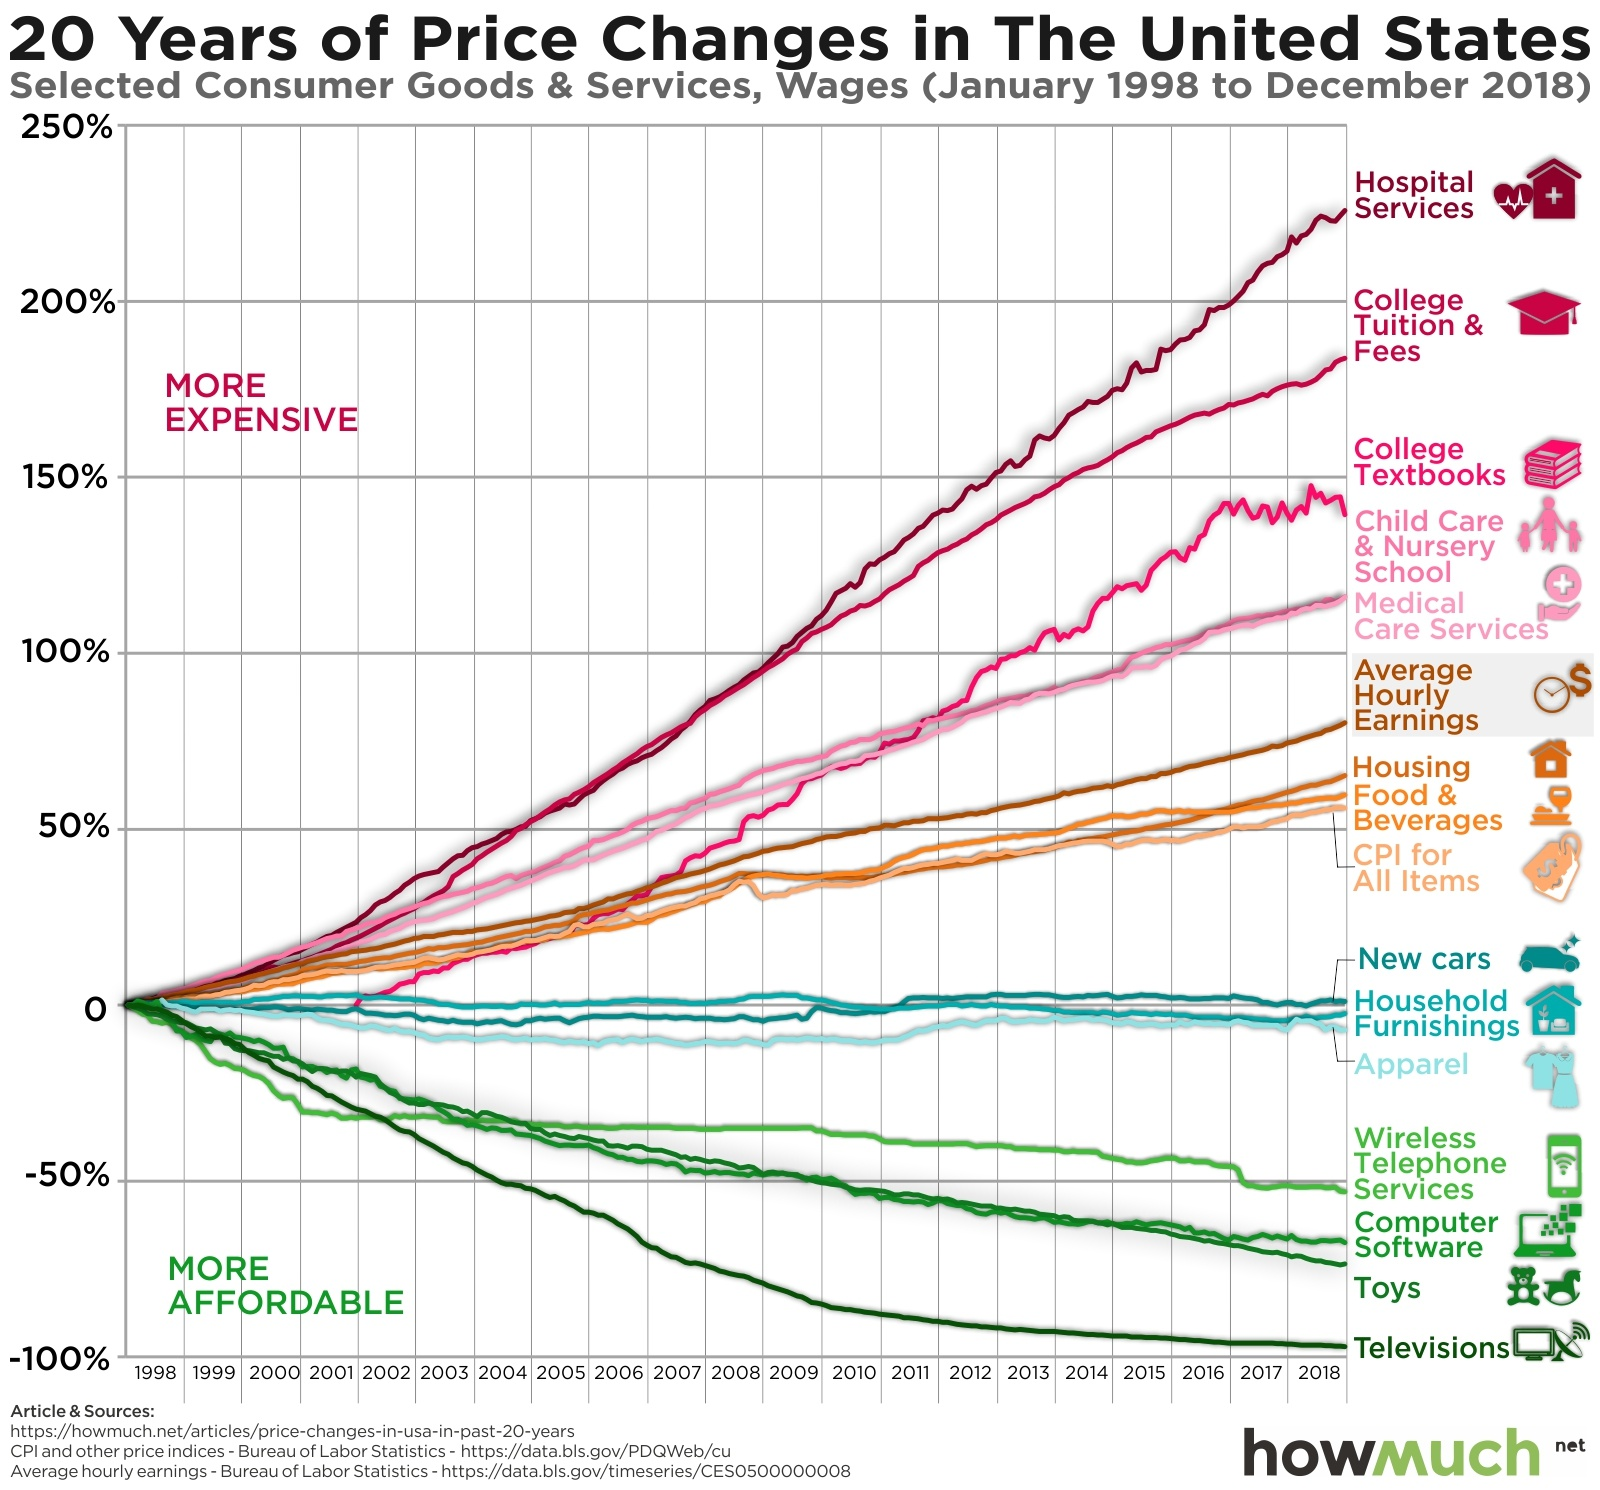 Price Changes Over the Last 20 Years Prove the Economy is Rigged